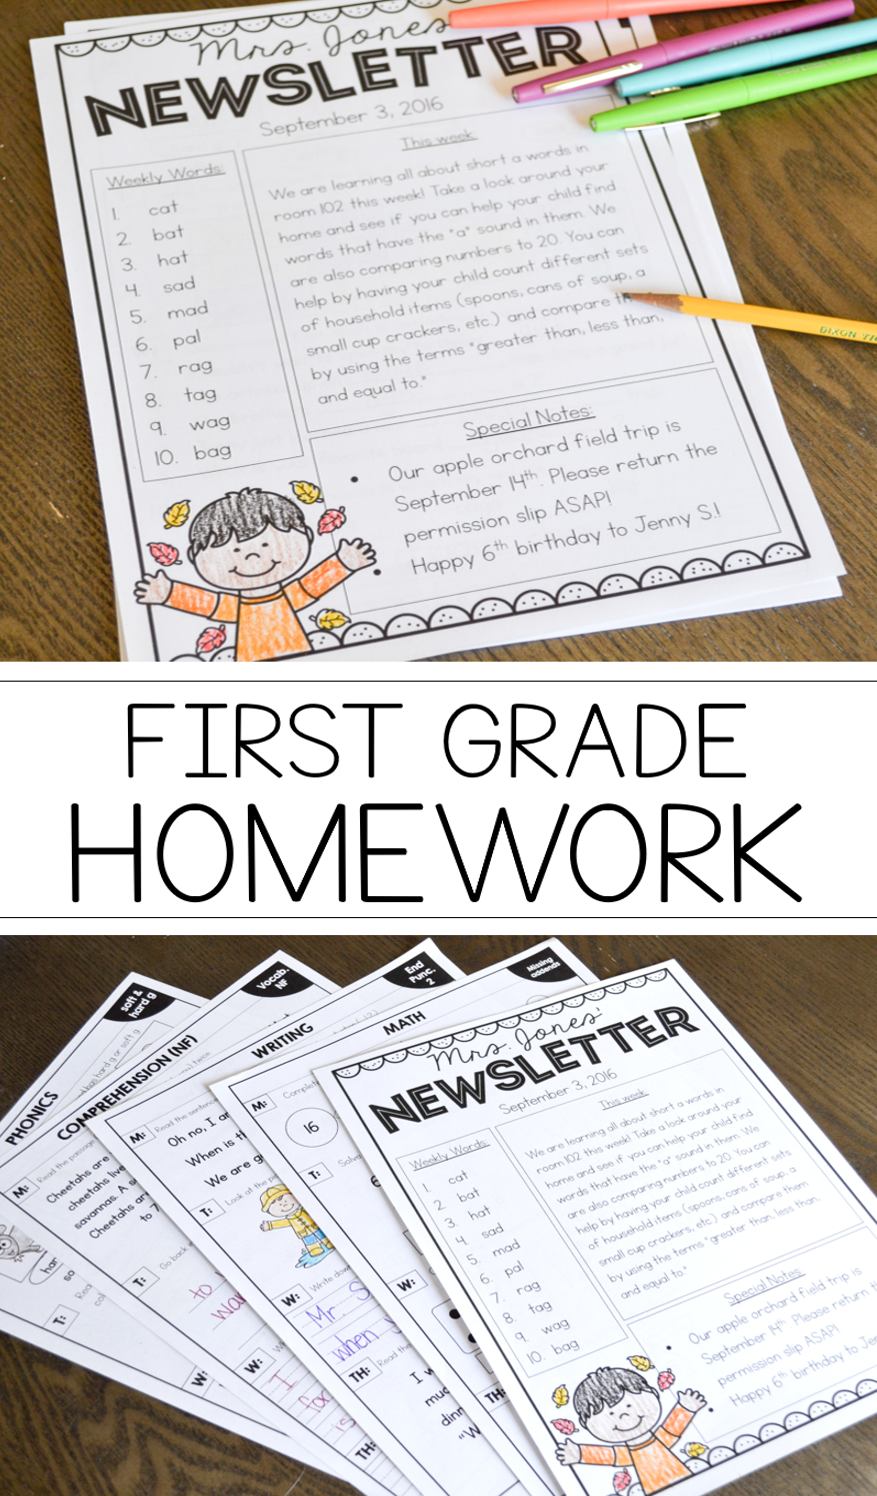 homework for first grade